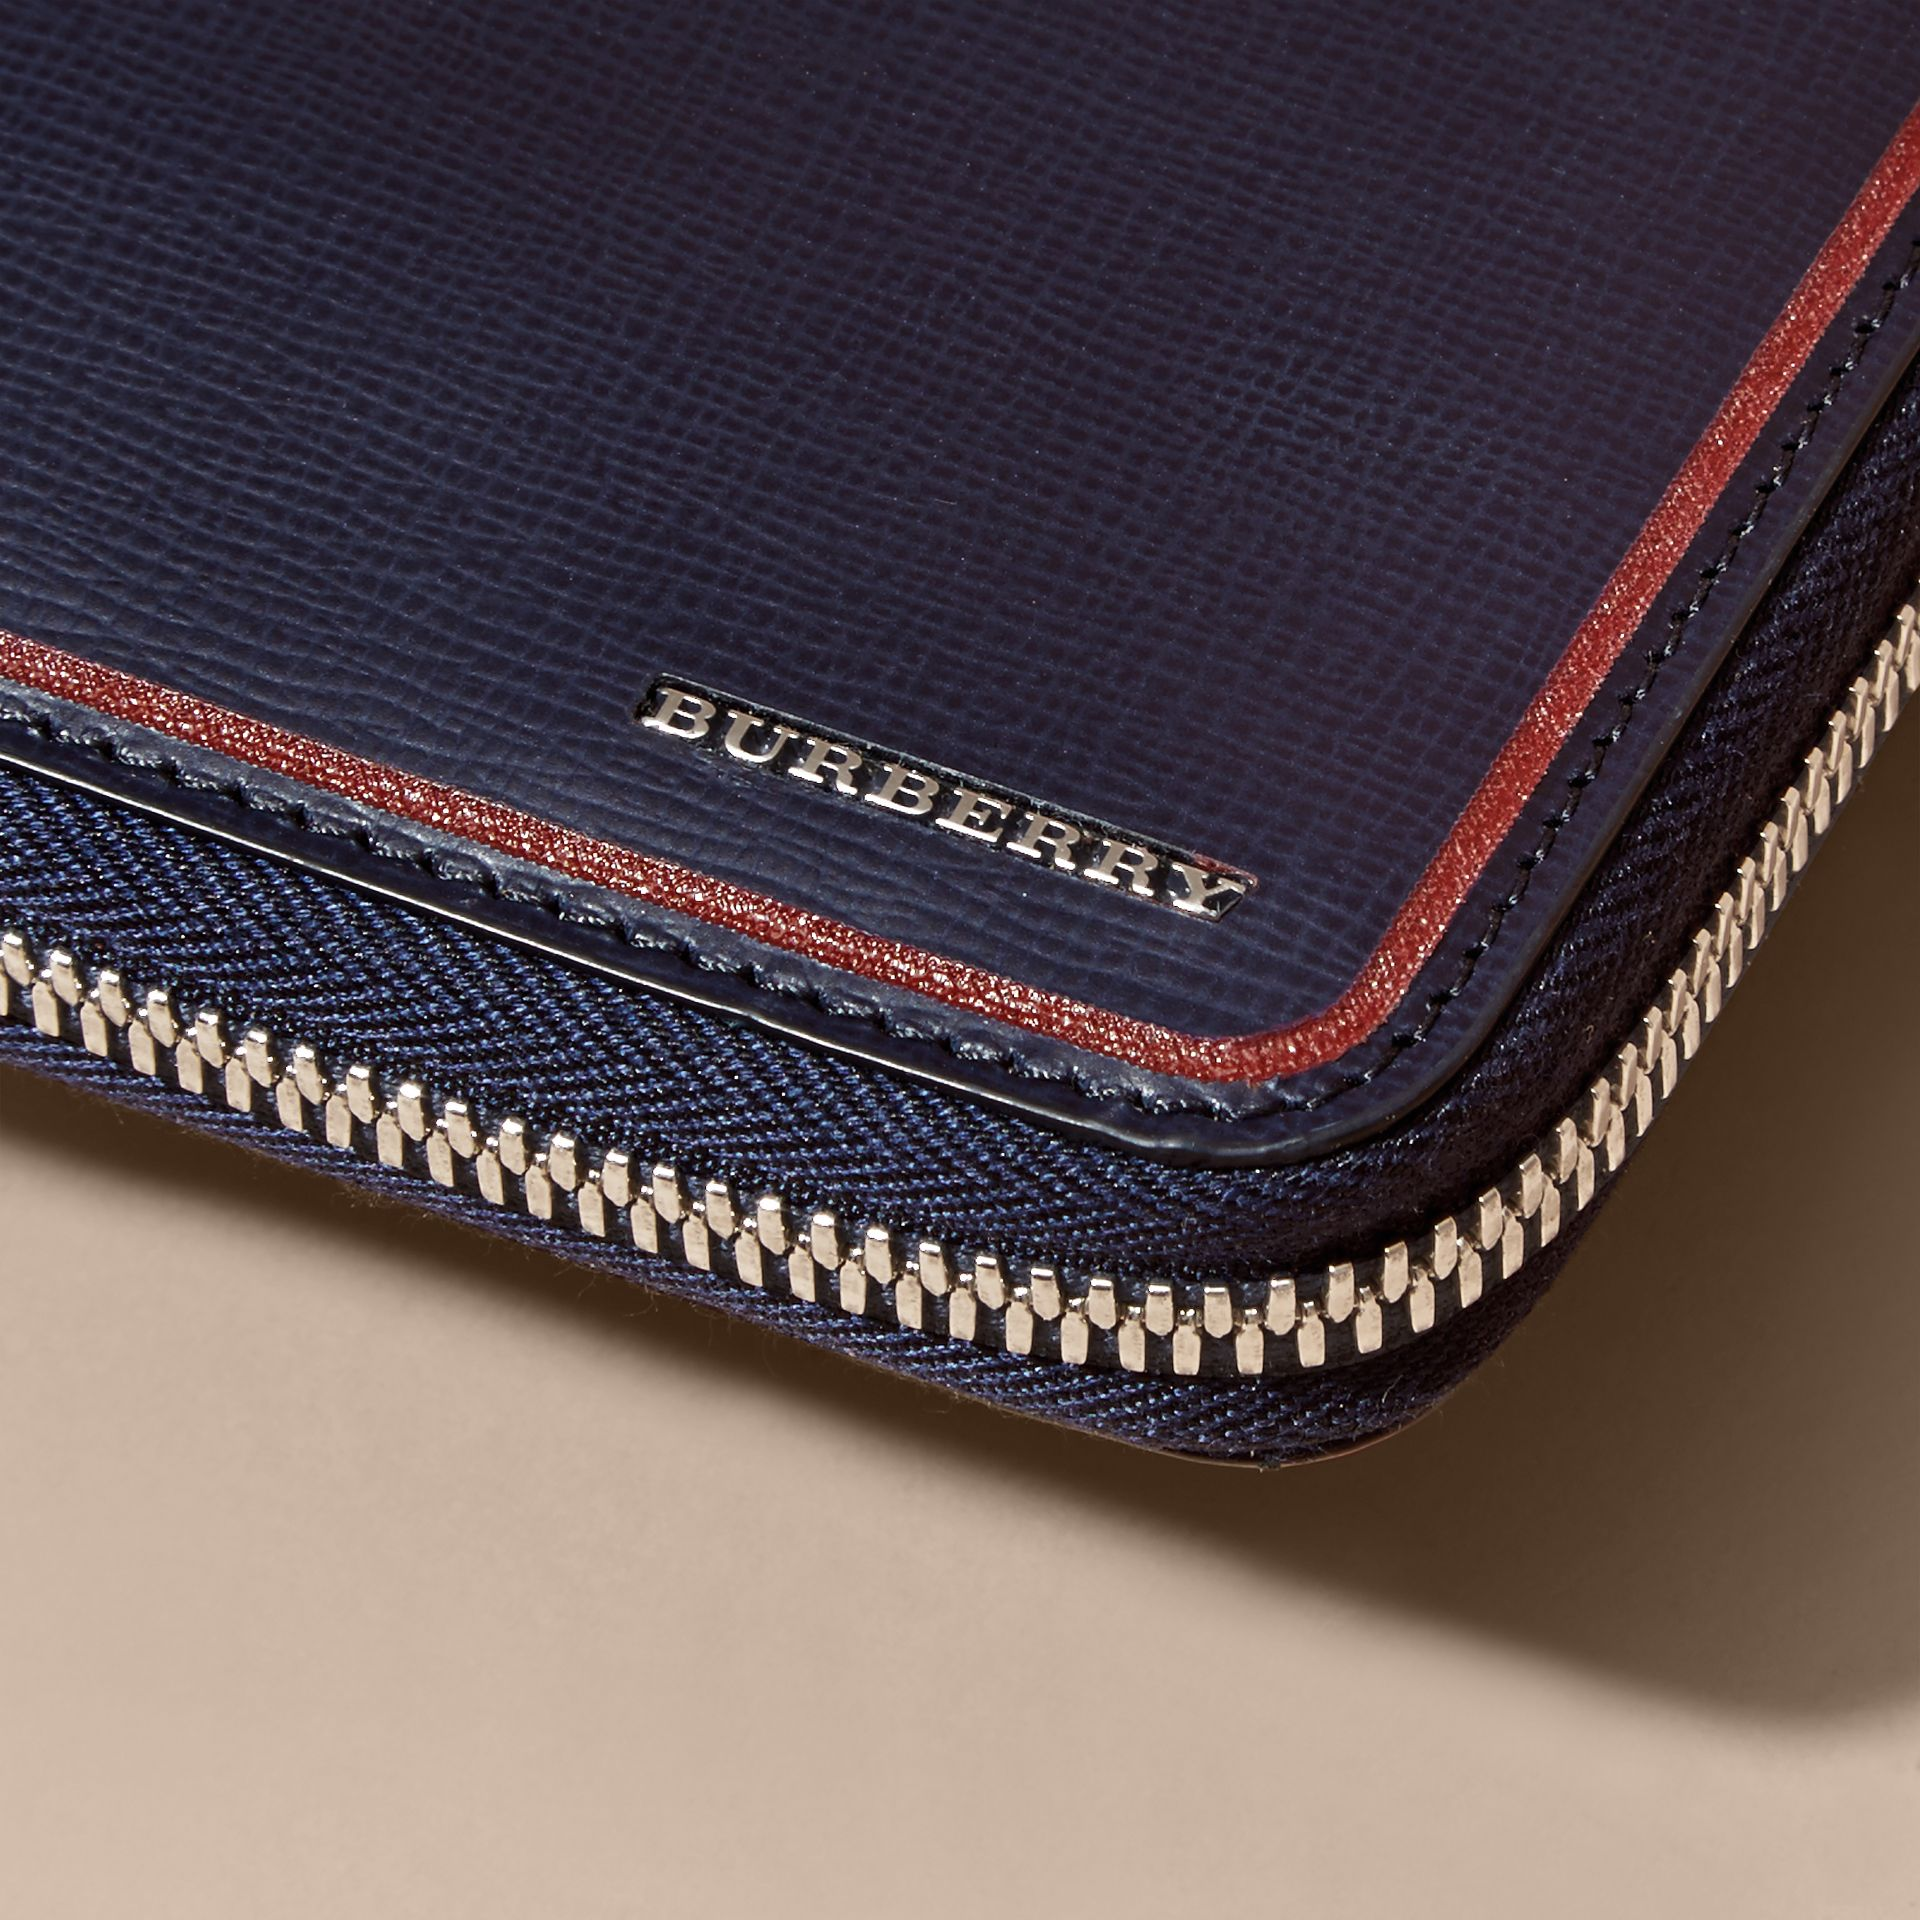 Border Detail London Leather Ziparound Wallet Dark Navy - gallery image 4